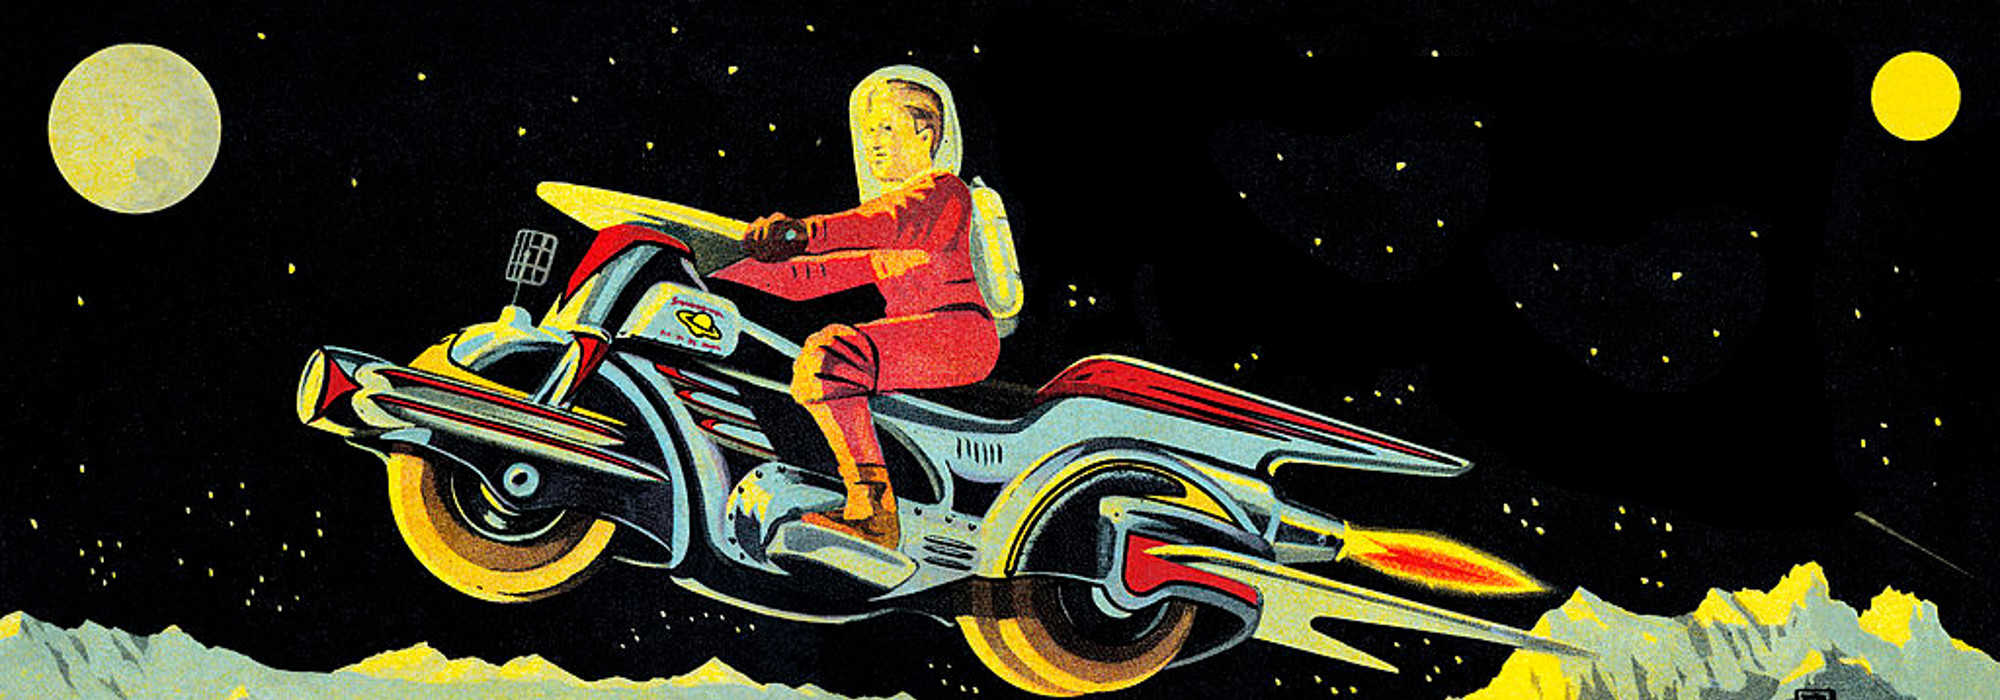 Retro space bike rider